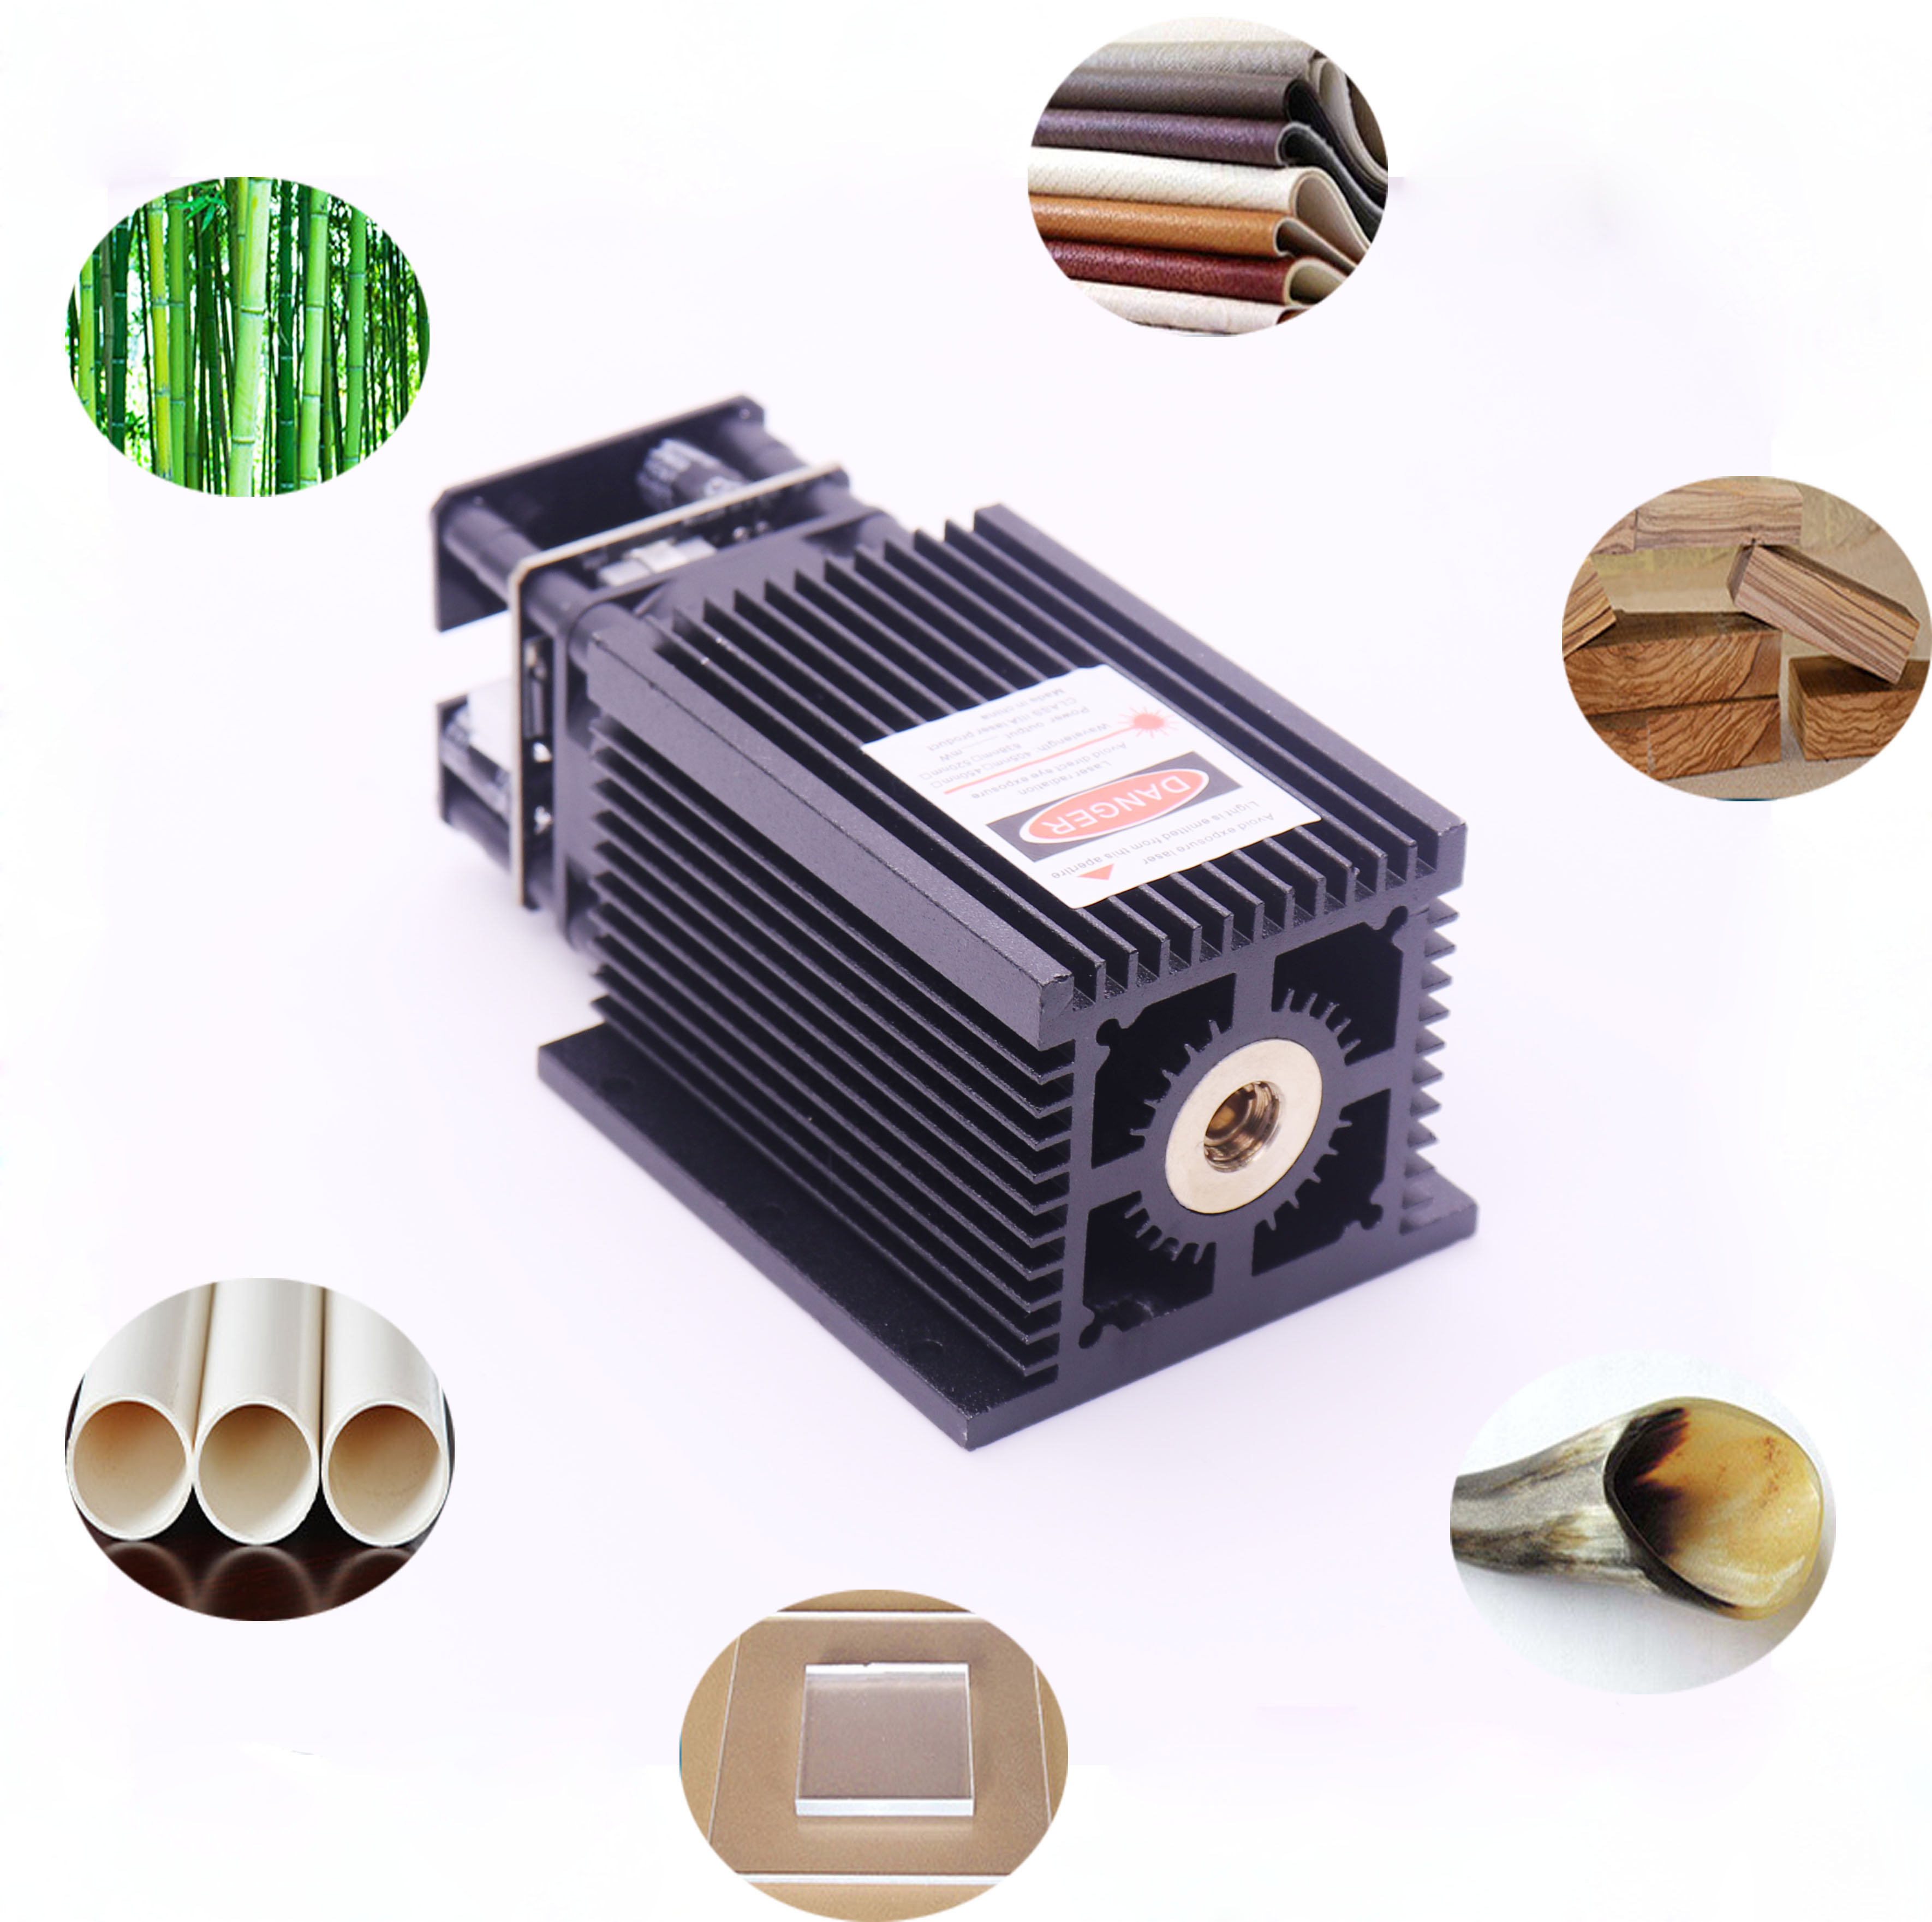 5500mW / 7 W / 10 W 450nm Blue-violet Light Laser Head For DIY Carving Engraving Machine Engraver Accessory